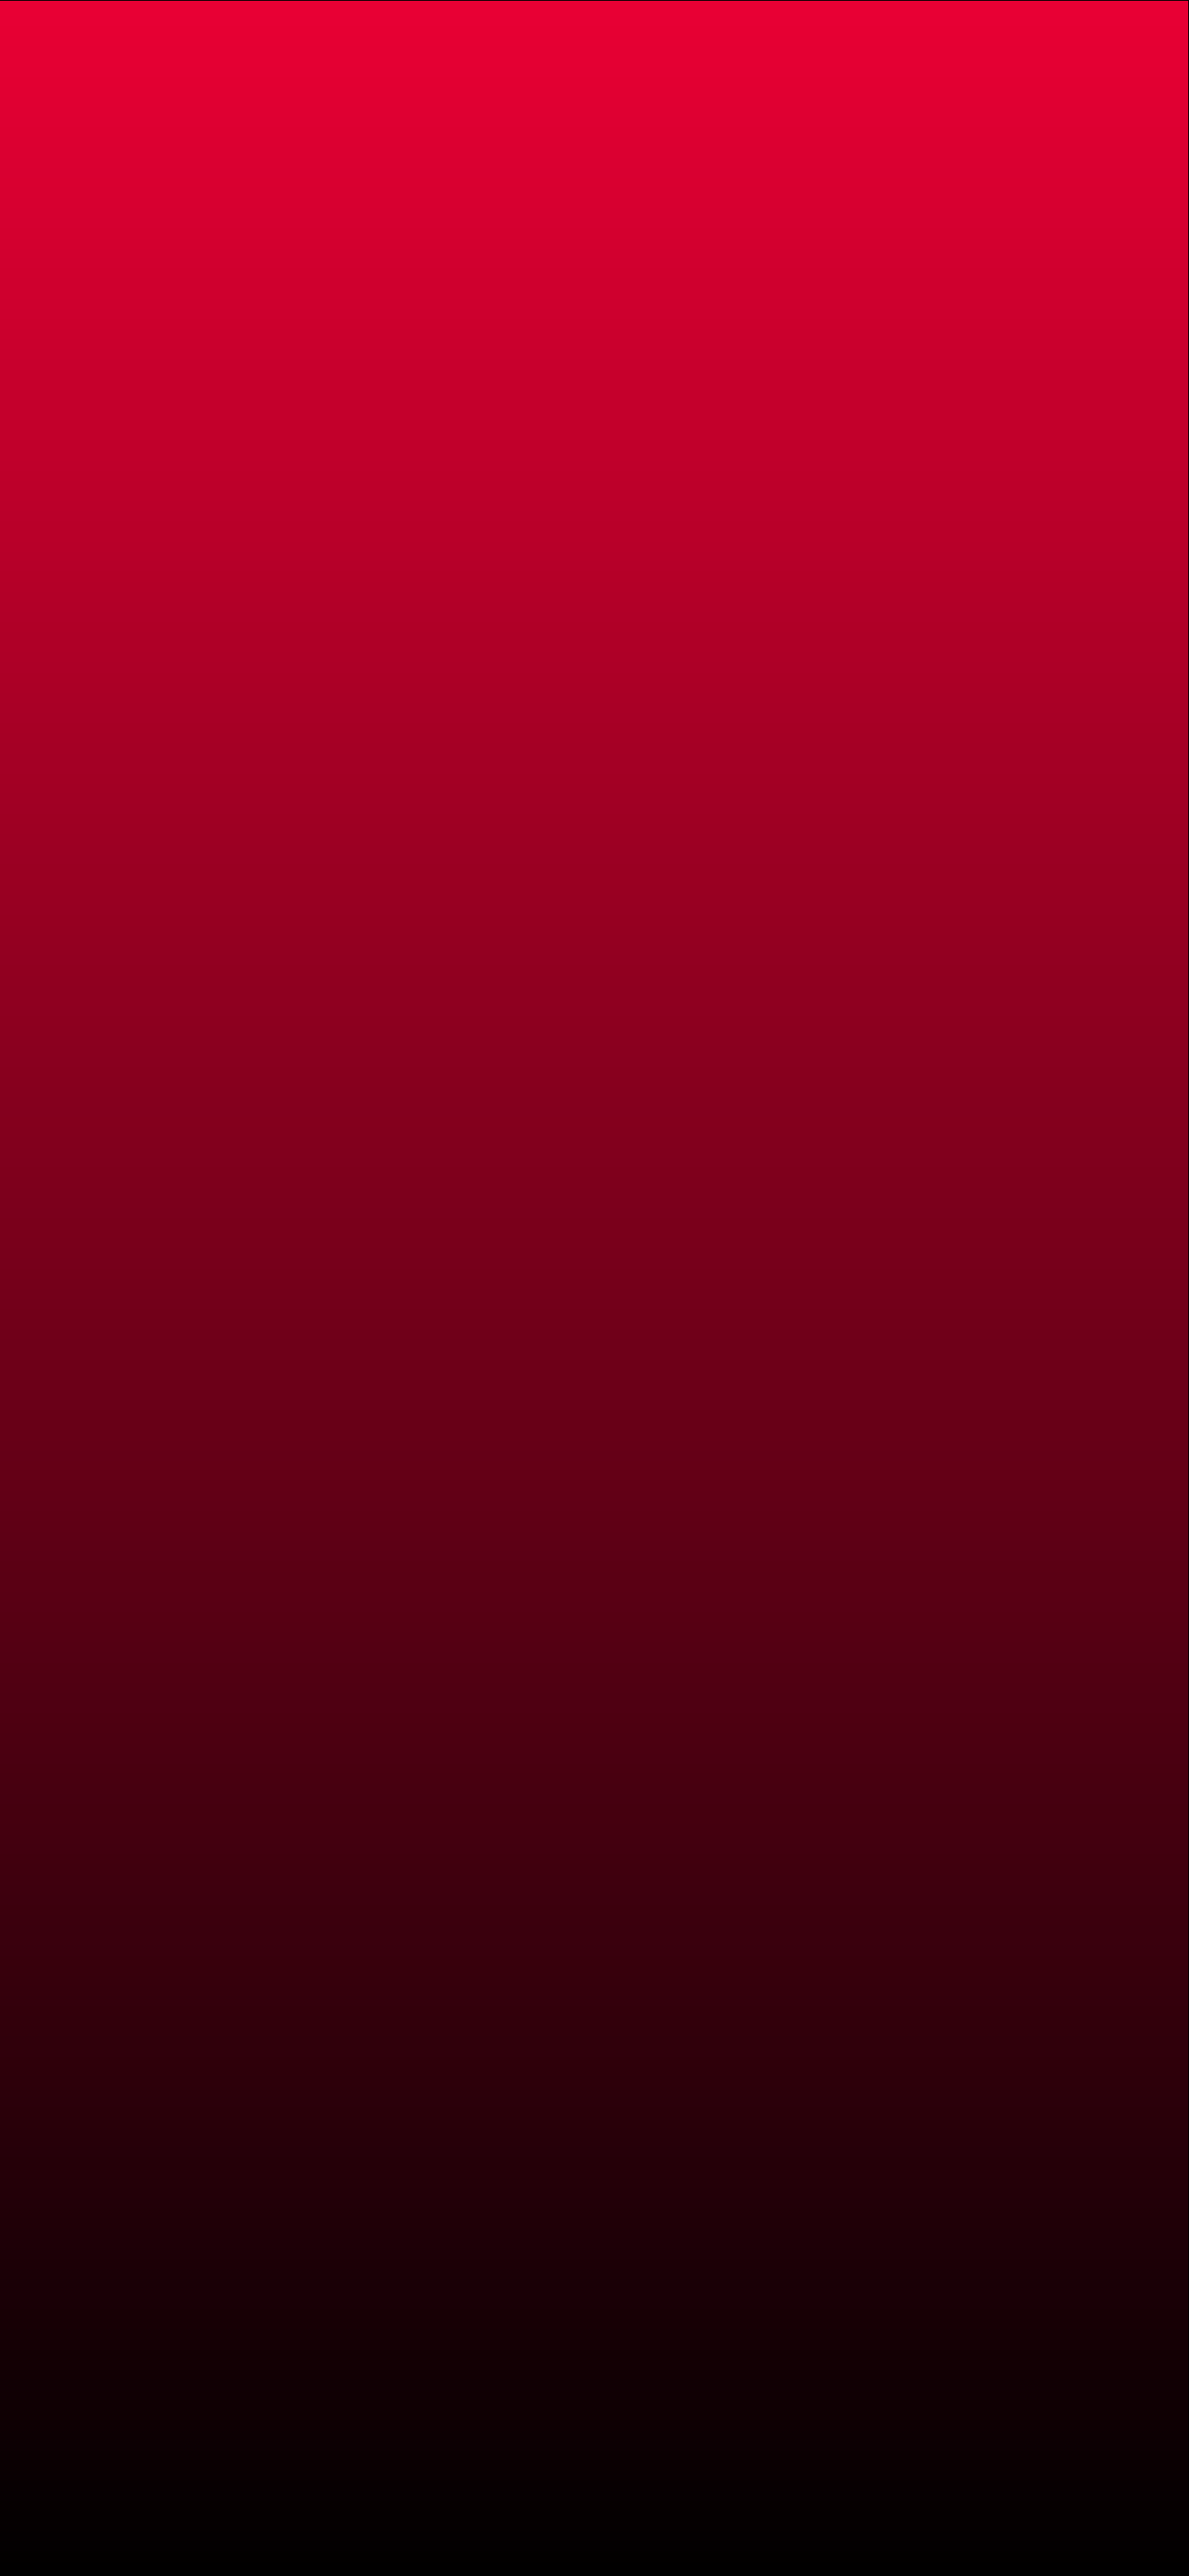 Gradient Wallpaper For Iphone 11 Red Texture Background Ombre Wallpapers Red Wallpaper